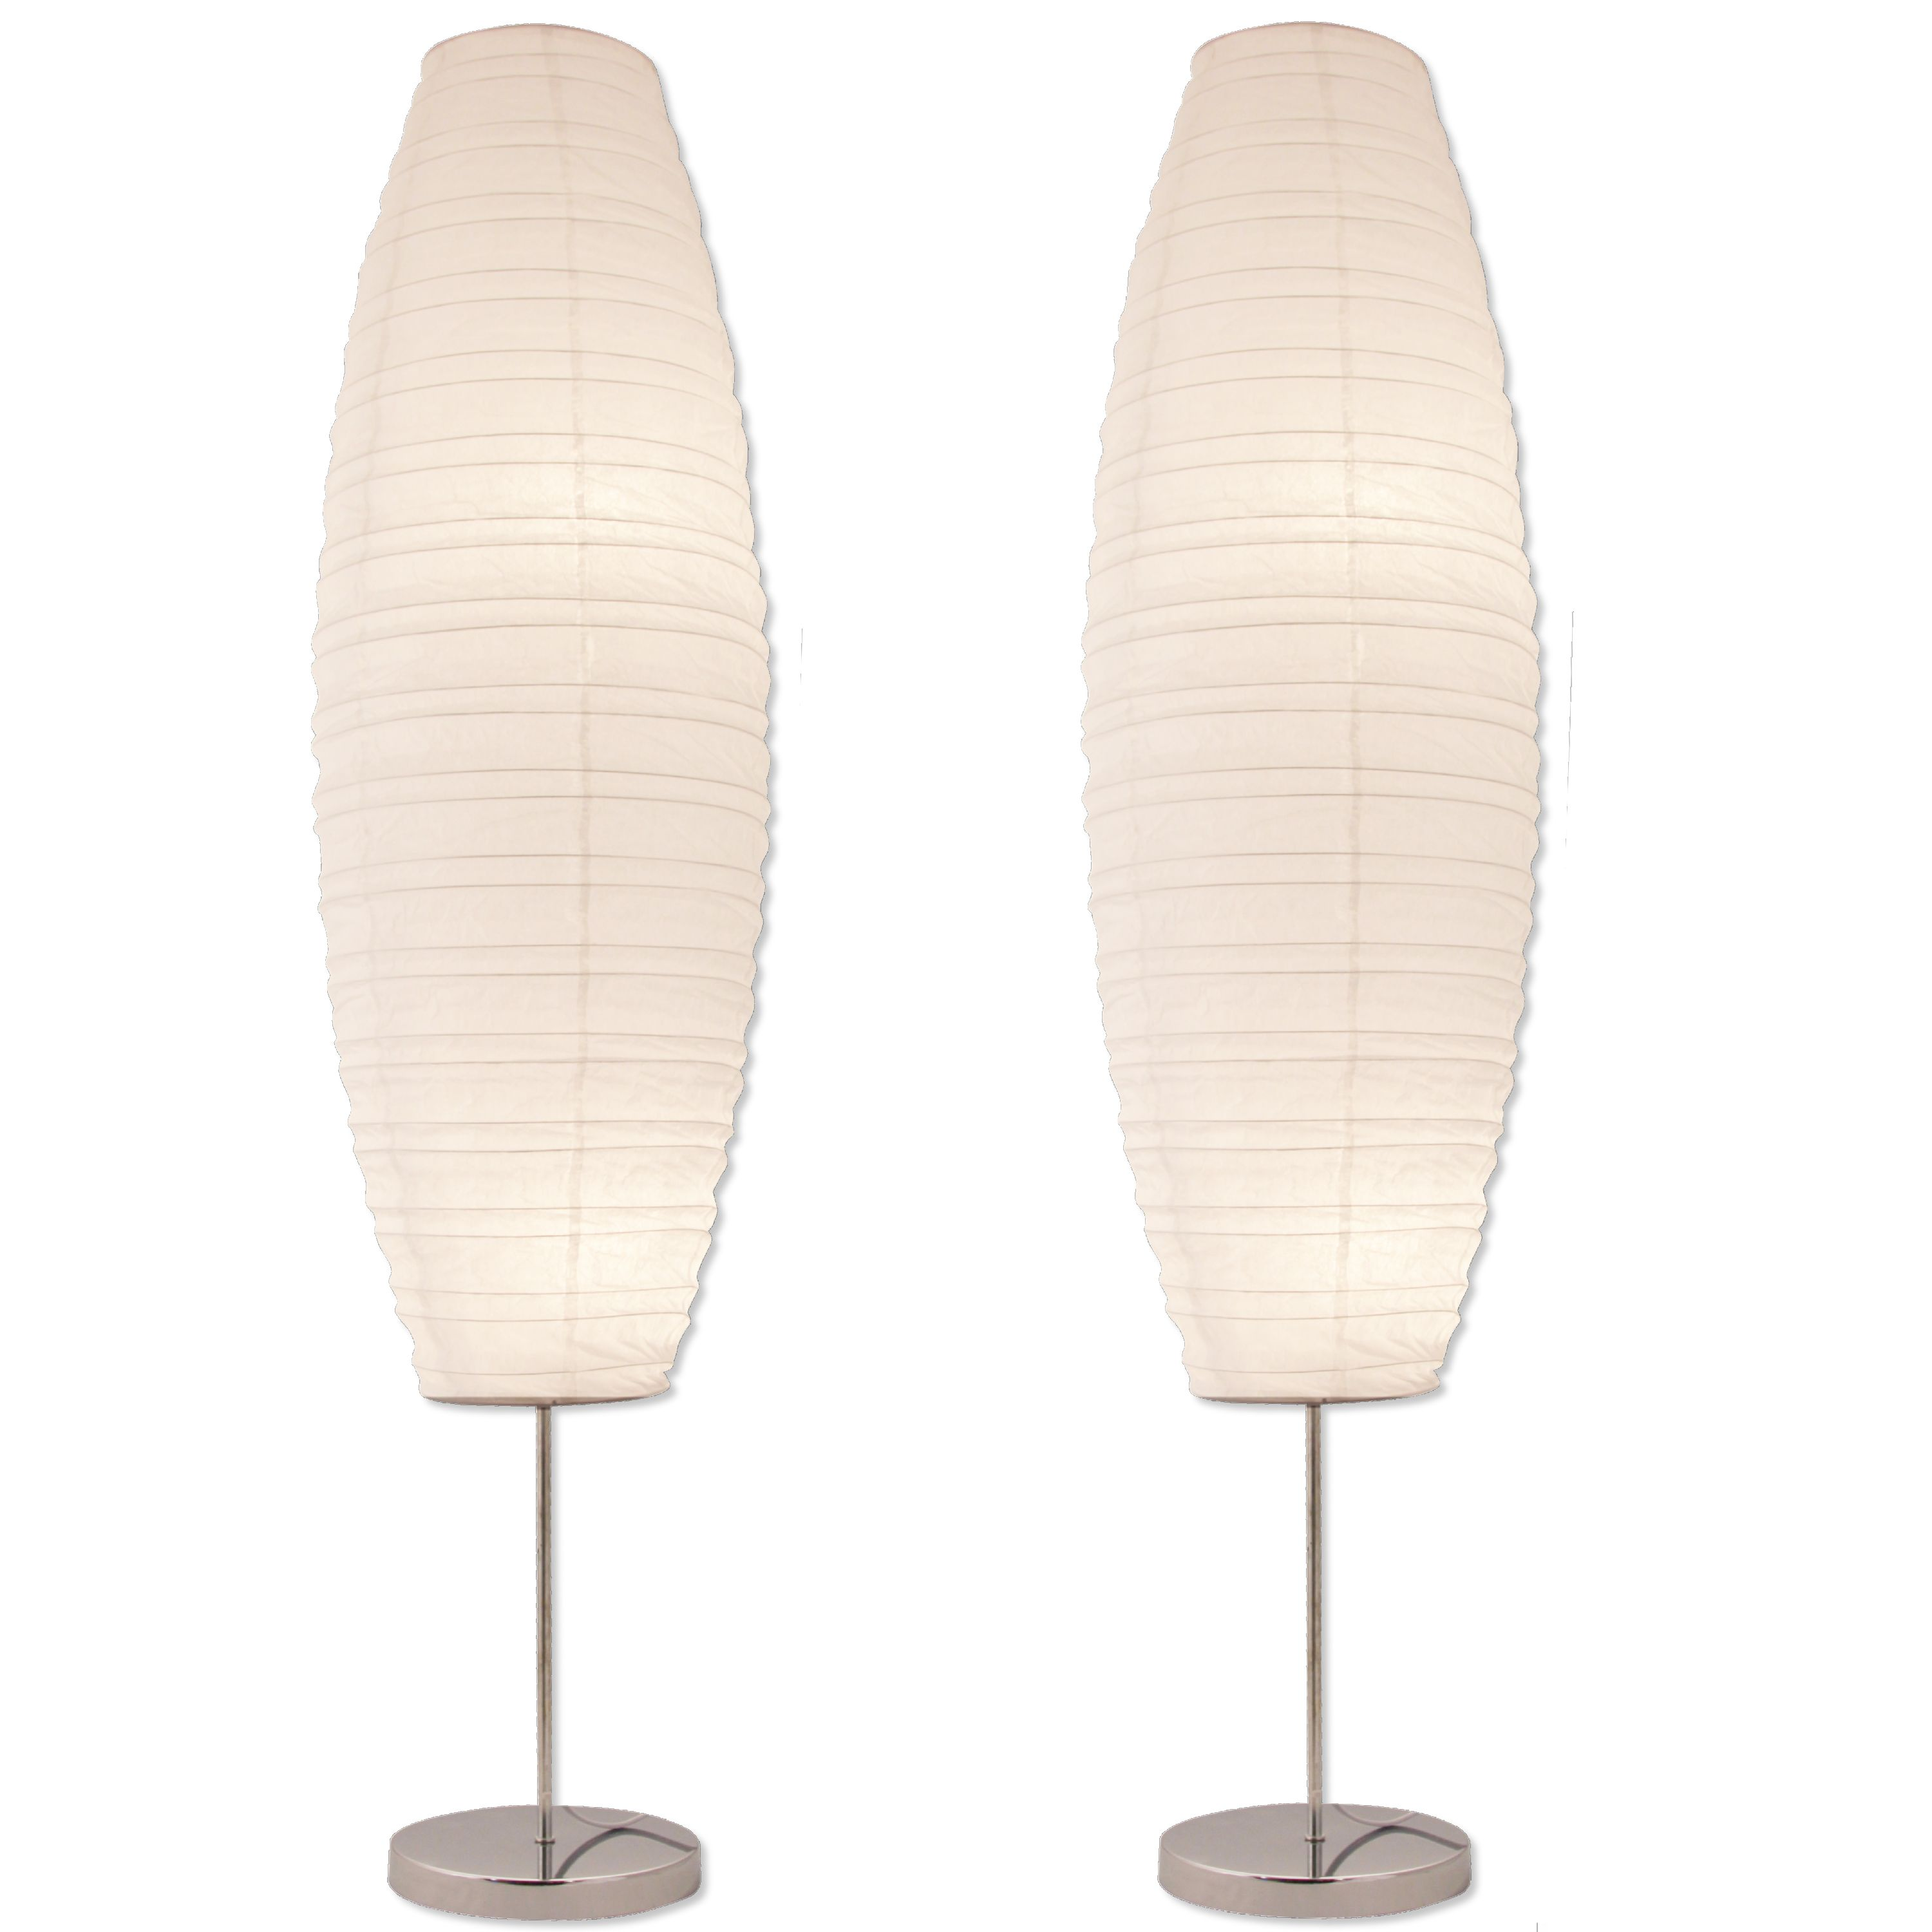 Light Accents Chrome Floor Lamp With Paper Shades Set Of 2